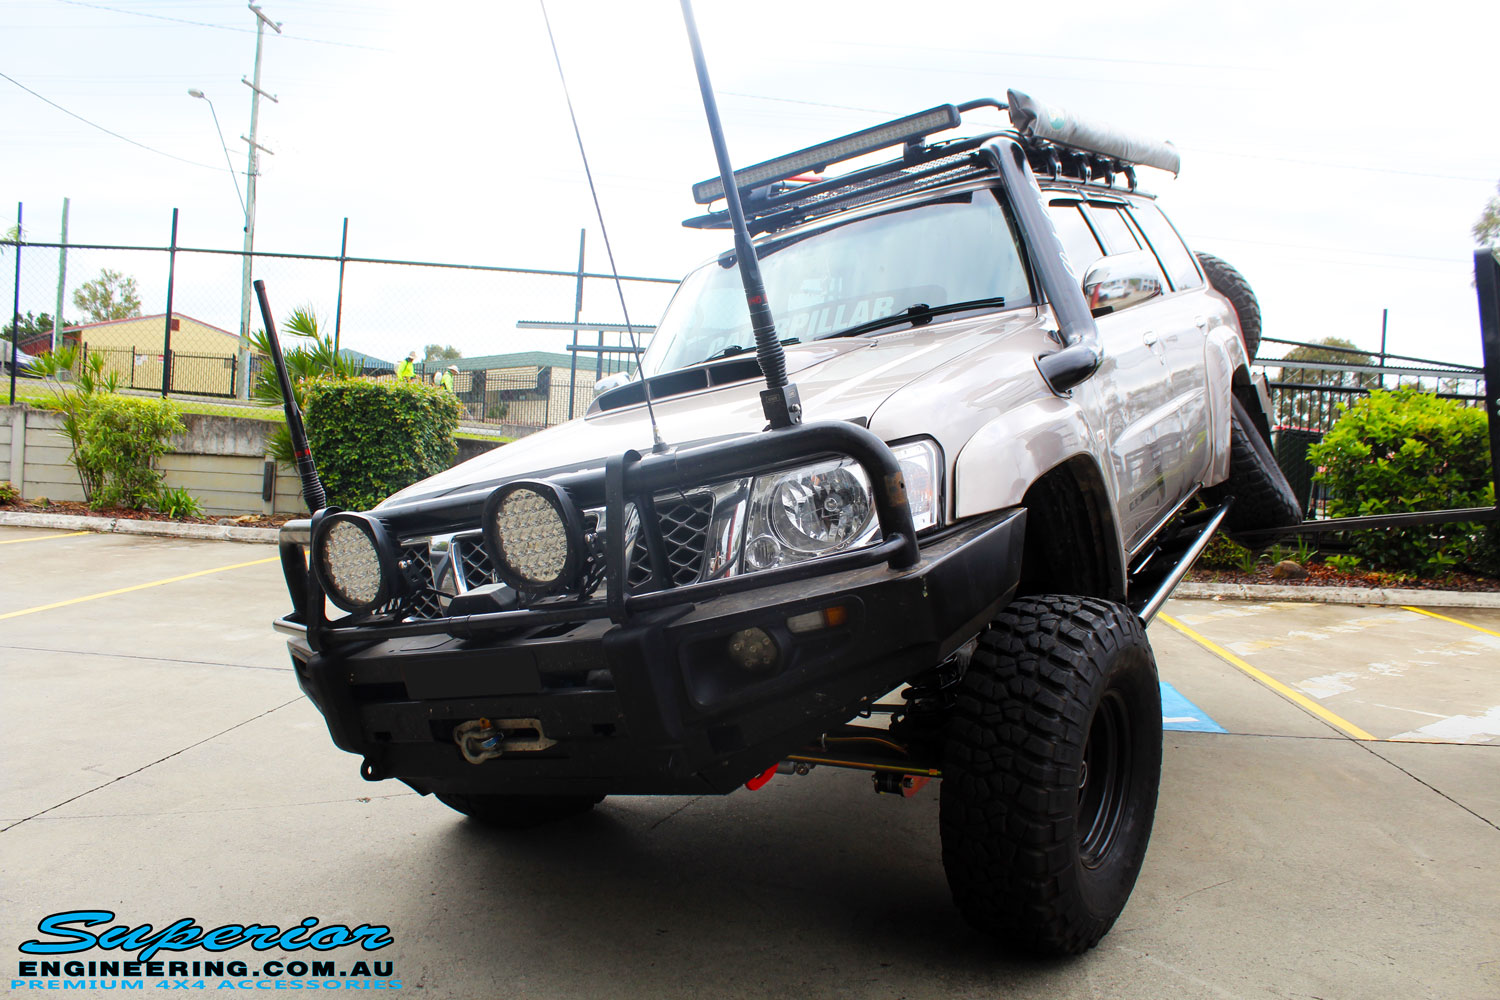 "Left front side view of a Gold Nissan GU Patrol showing its flex after fitment of a Superior Remote Reservoir Hyperflex 4"" Inch Lift Kit, Superior Control Arms Long Arm Kit, Superior Superflex Swaybar Front & Rear Kits, Superior 4340m Heim Joint Tie Rod with King Shocks"